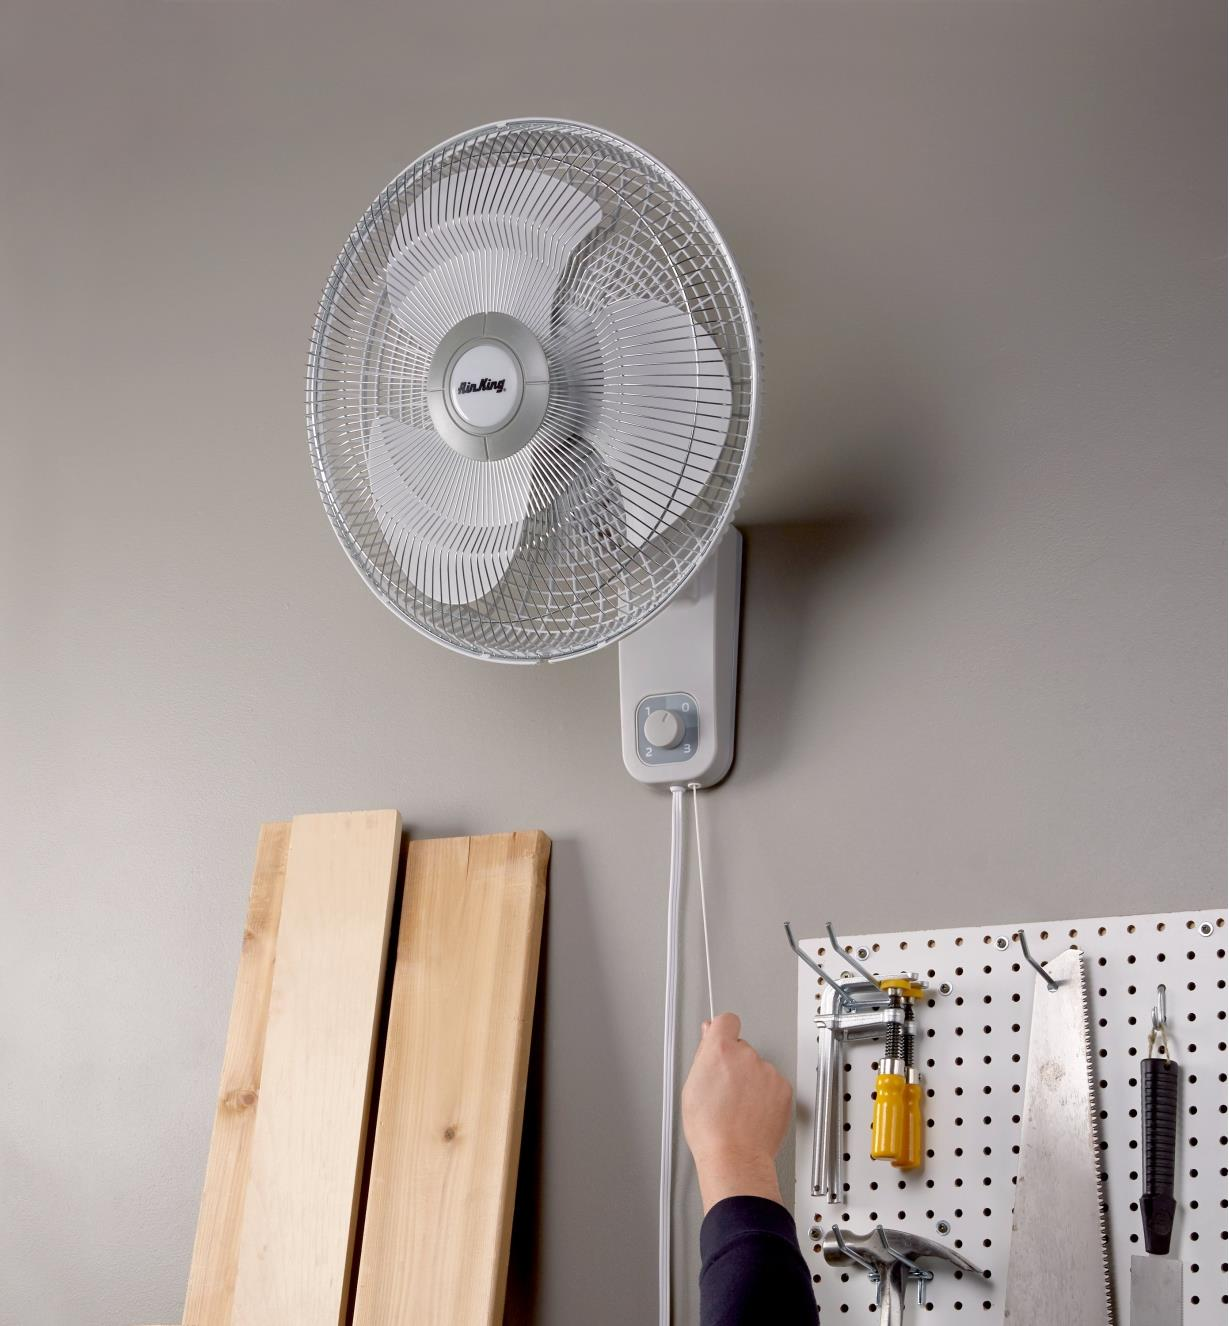 Using the pull-cord to adjust fan speed on the Air King fan installed high on a wall